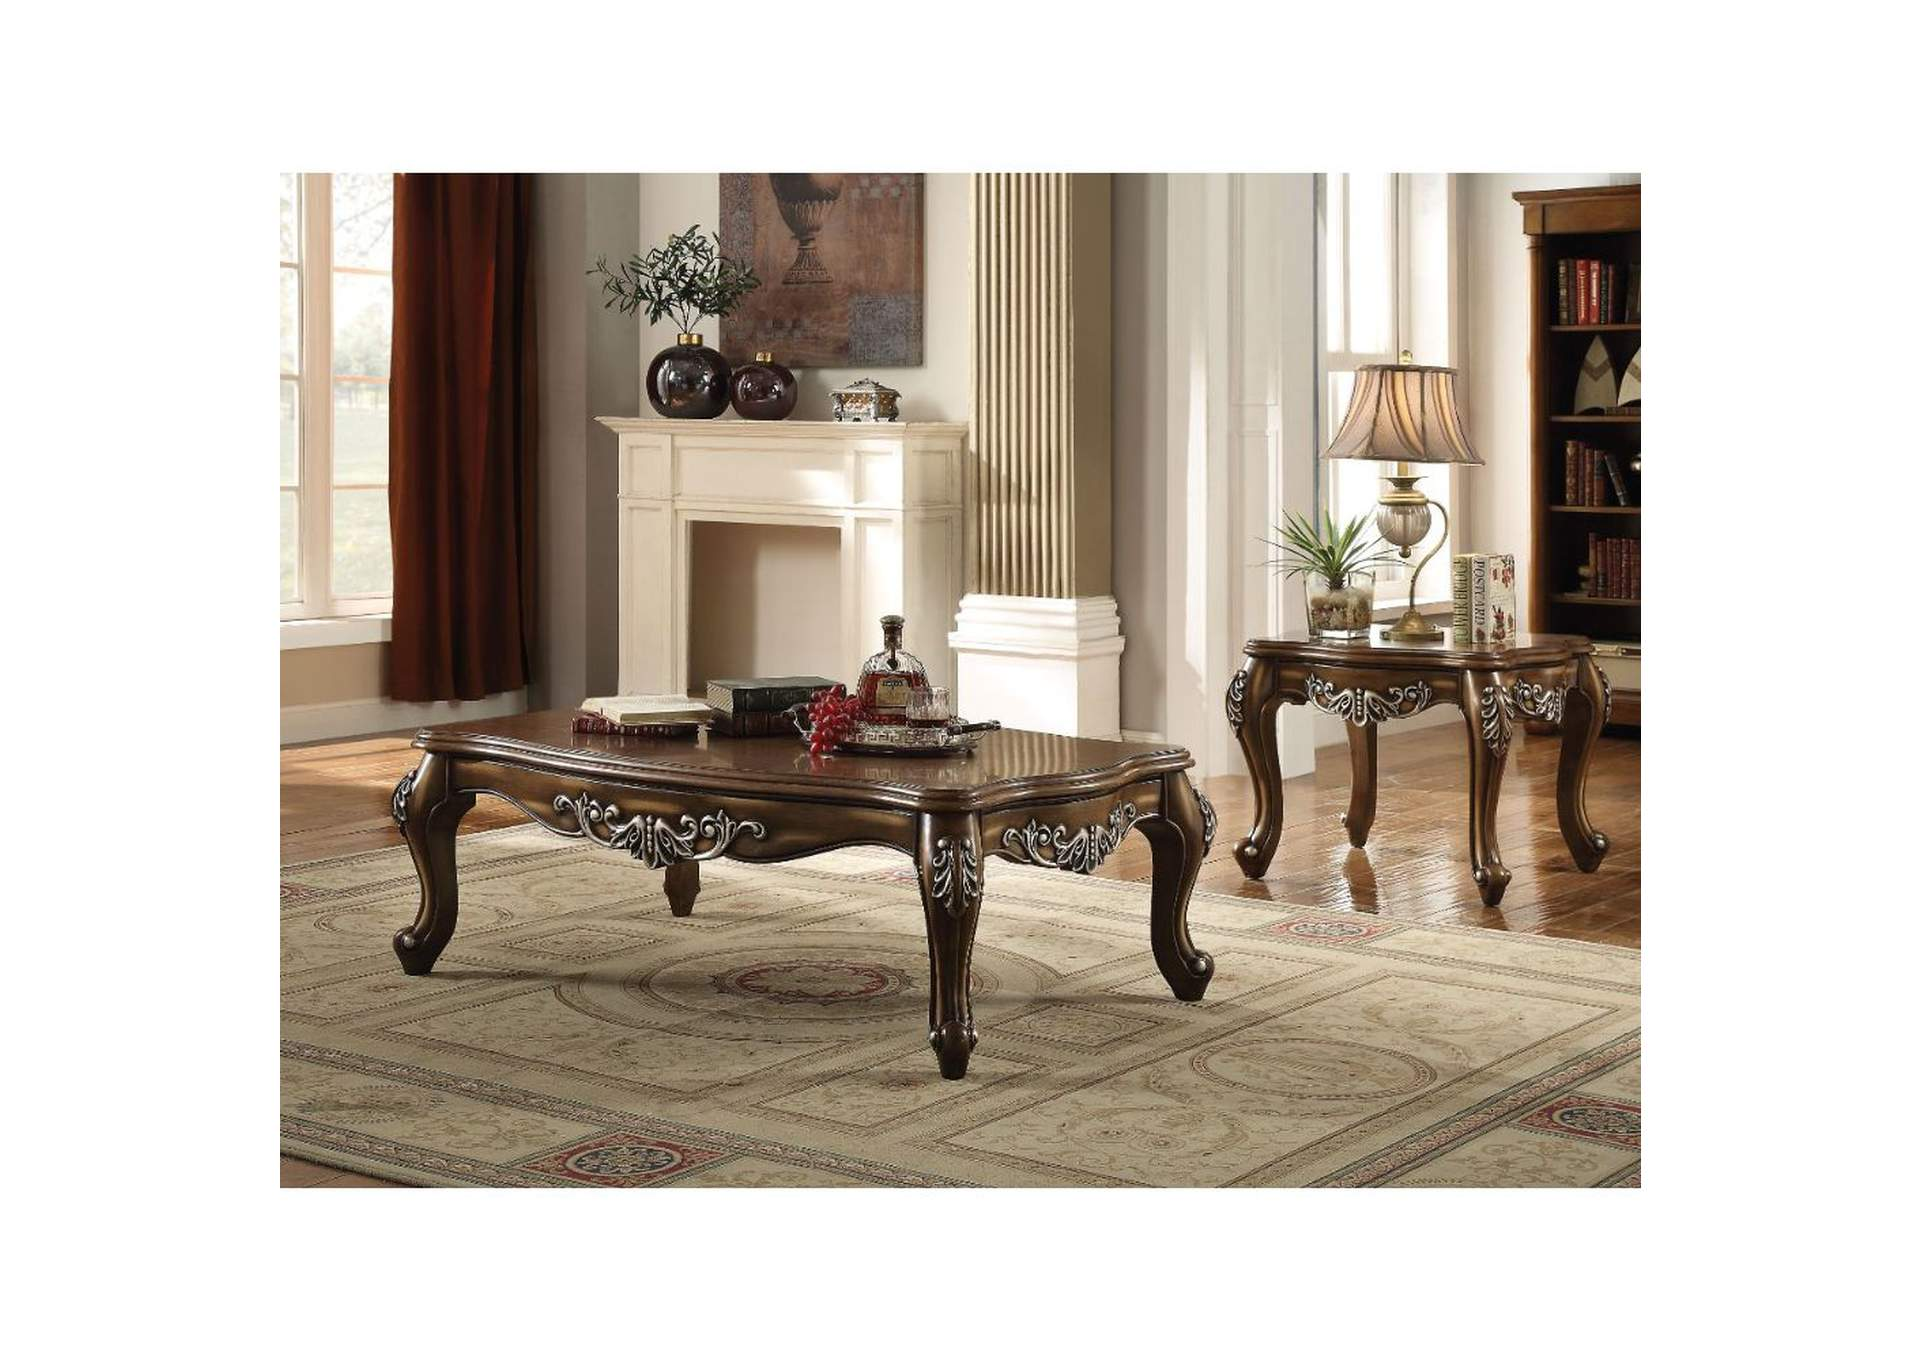 Elhan Cherry 3 Piece Coffee and End Table Set,Acme